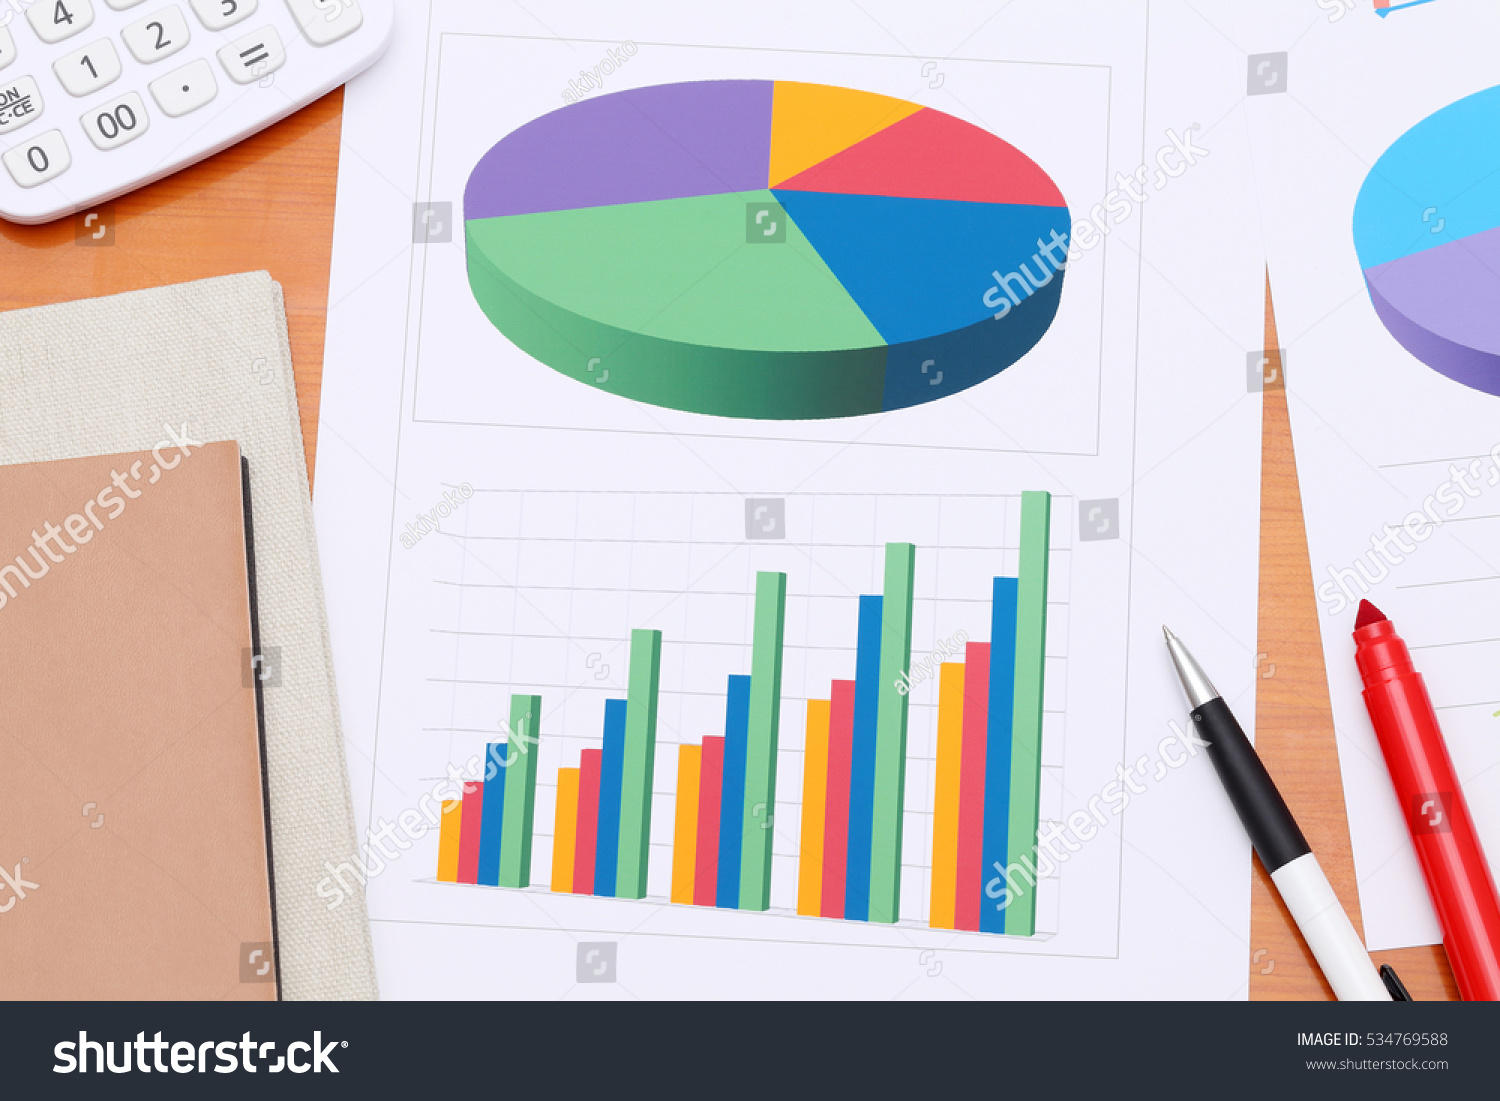 Color Chart Printed On Paper Sheet Stock Photo Royalty Free